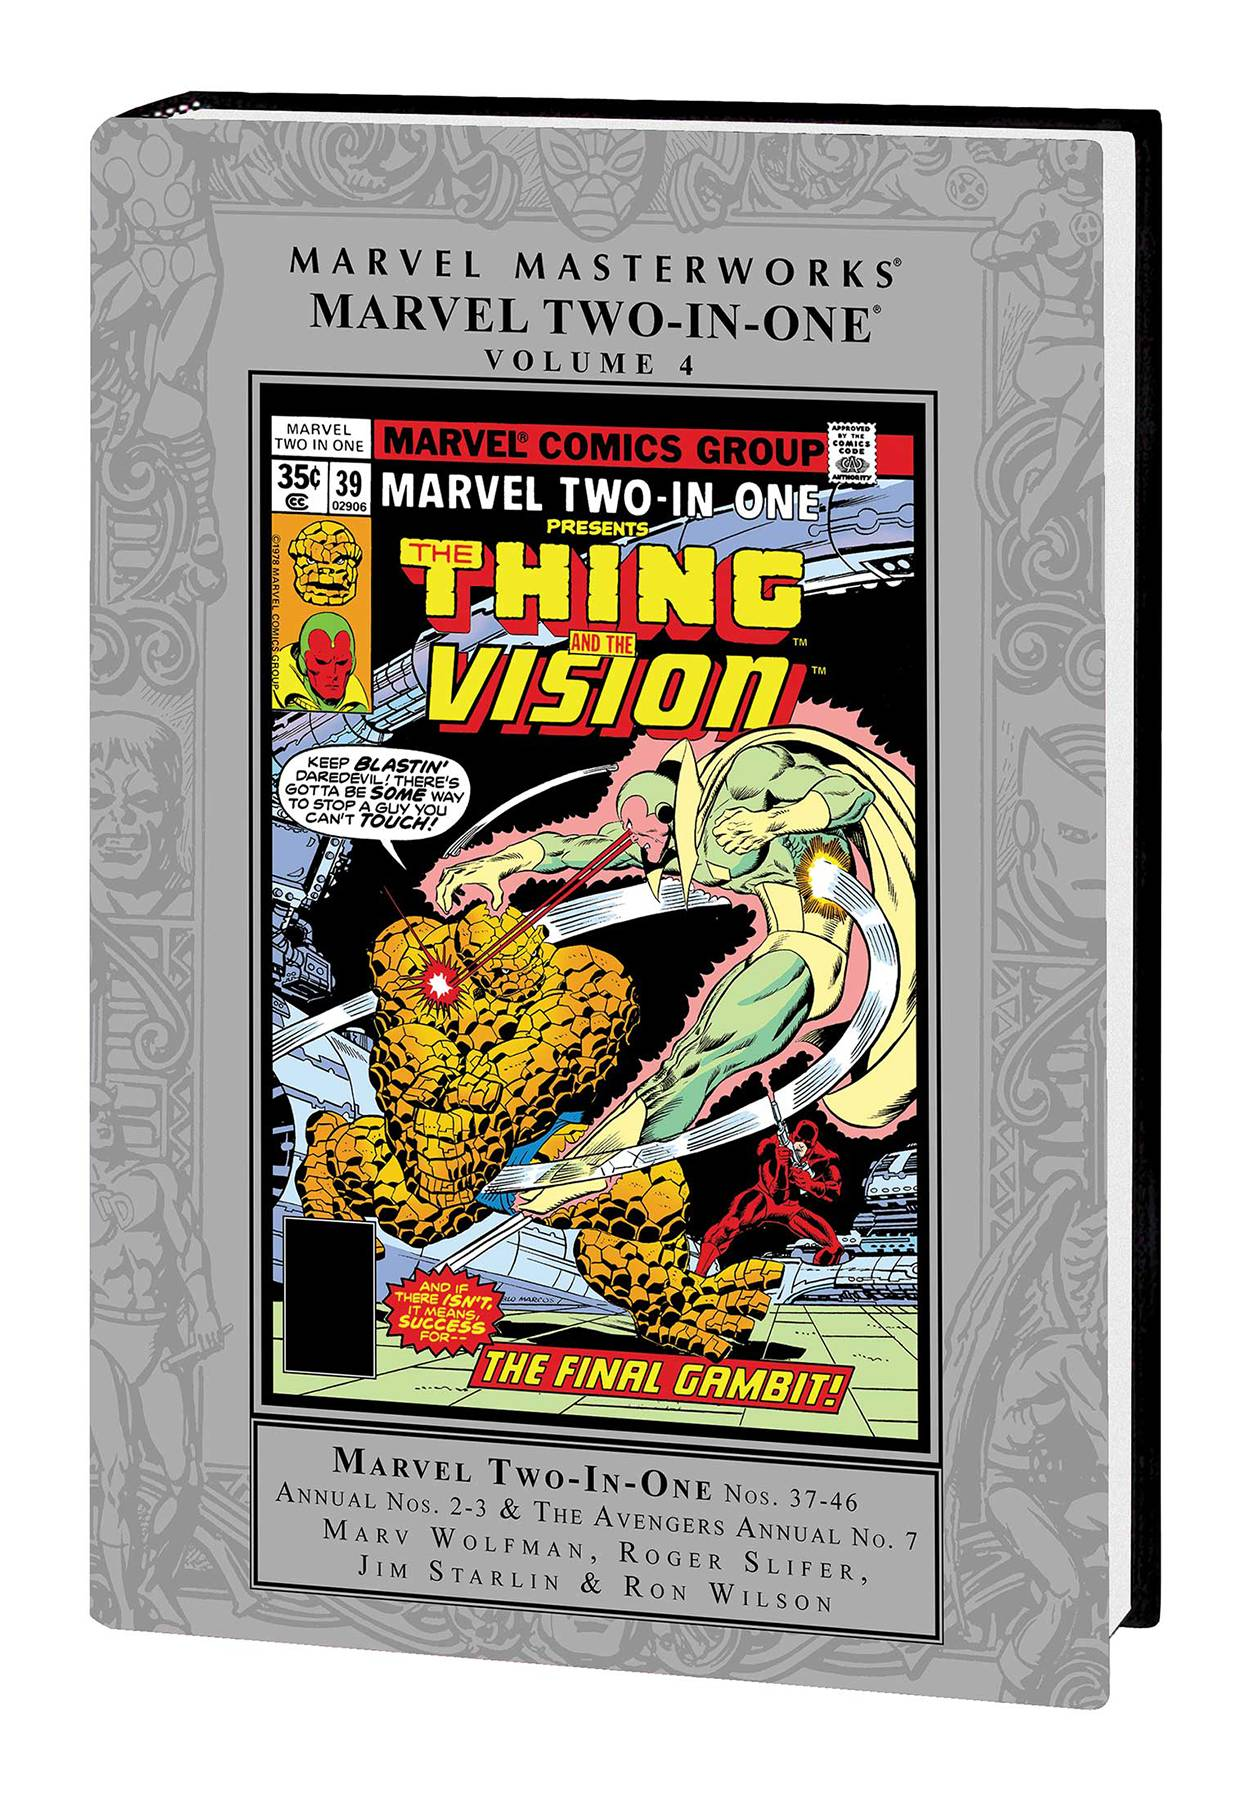 MMW MARVEL TWO IN ONE HC 4.jpg